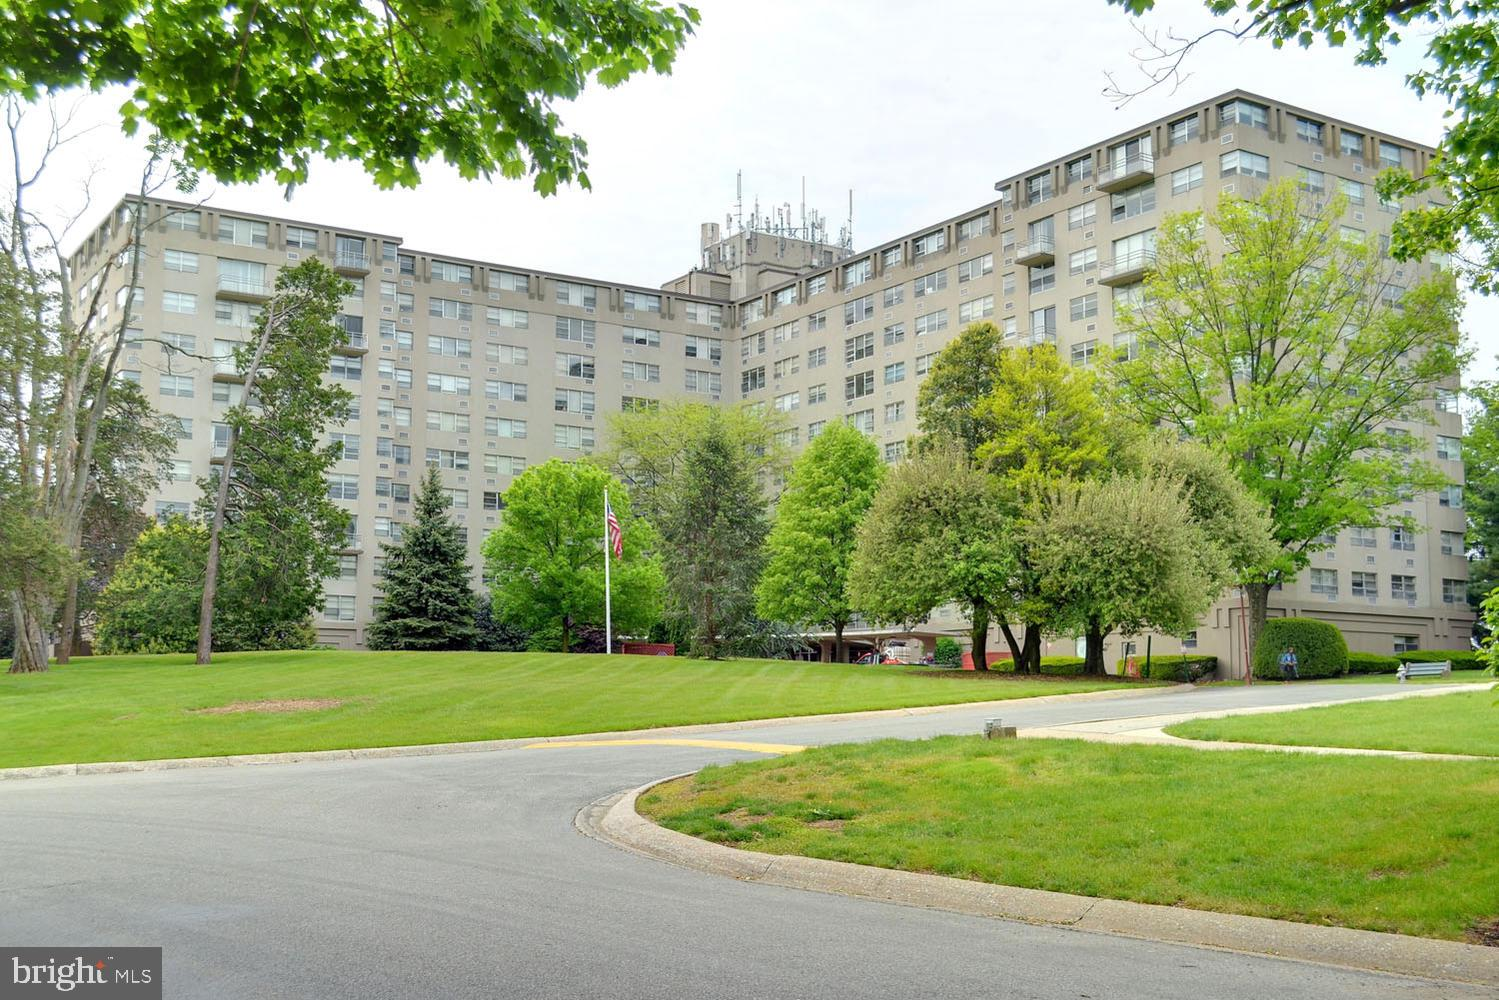 Great 2 bedroom unit in the Radnor House building located in sought after Bryn Mawr.  This unit boasts a walk-out balcony overlooking the pool, great light and views! This unit offers an open living room and kitchen. Radnor House offers secured entrances with security desk, on site laundry, grand lobby, plenty of outside parking with the option to park in the garage at a monthly rate, walk to the train, shopping and dining. Beautiful community pool and outdoor playground is for residents only. Do not miss out on this great opportunity!